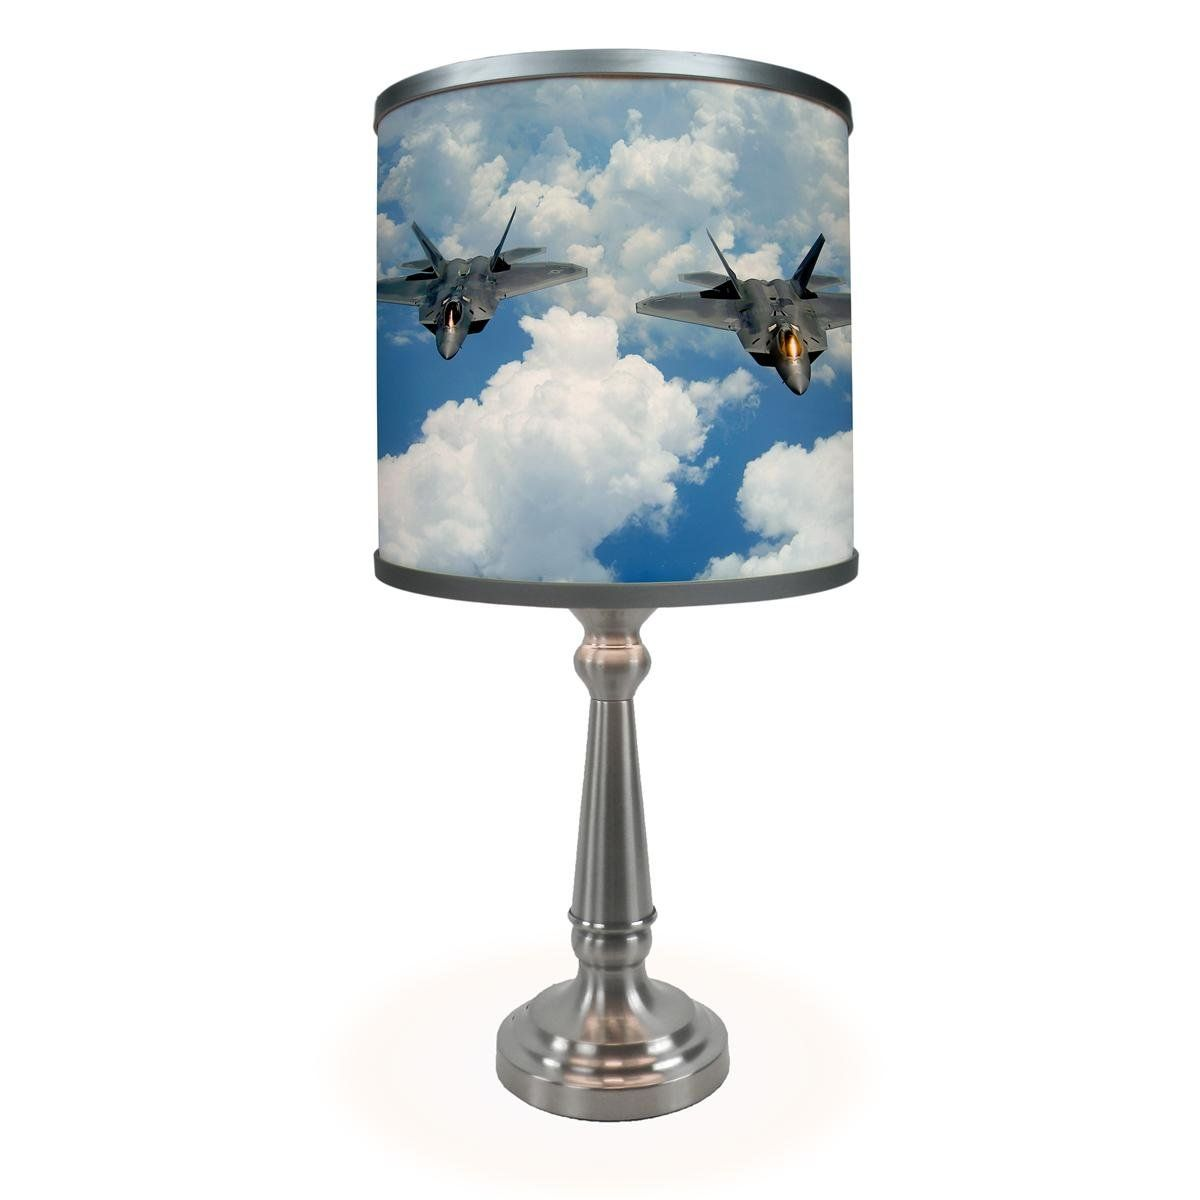 Woodland park f 22 raptor 195 table lamp products pinterest woodland park f 22 raptor 195 table lamp geotapseo Gallery